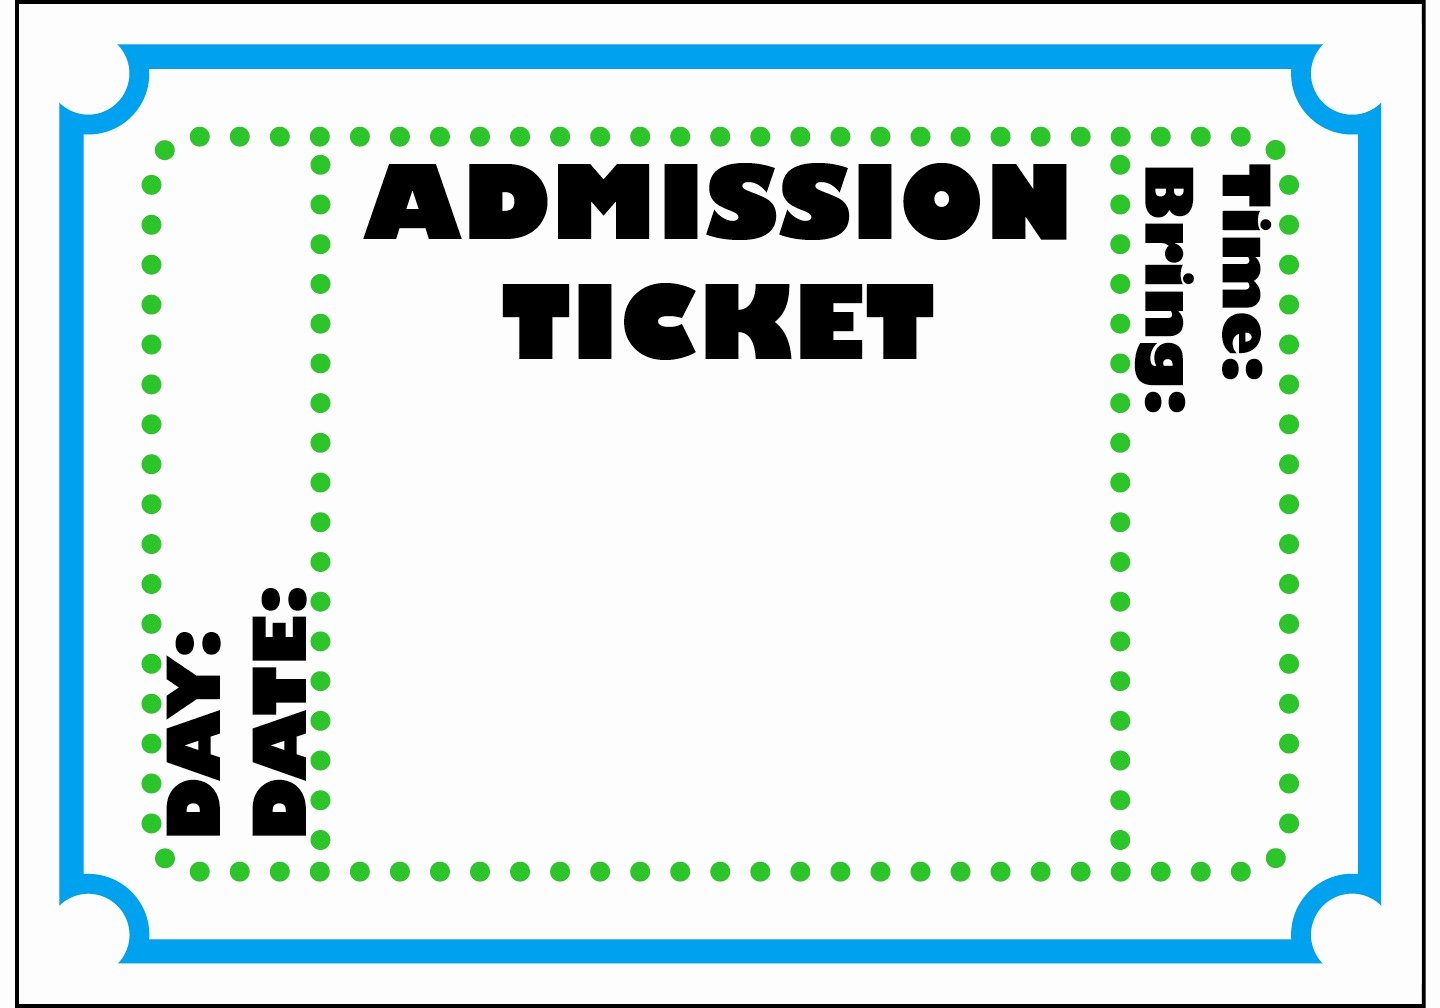 Movie Ticket Template for Word Elegant Admit E Ticket Template Example Mughals